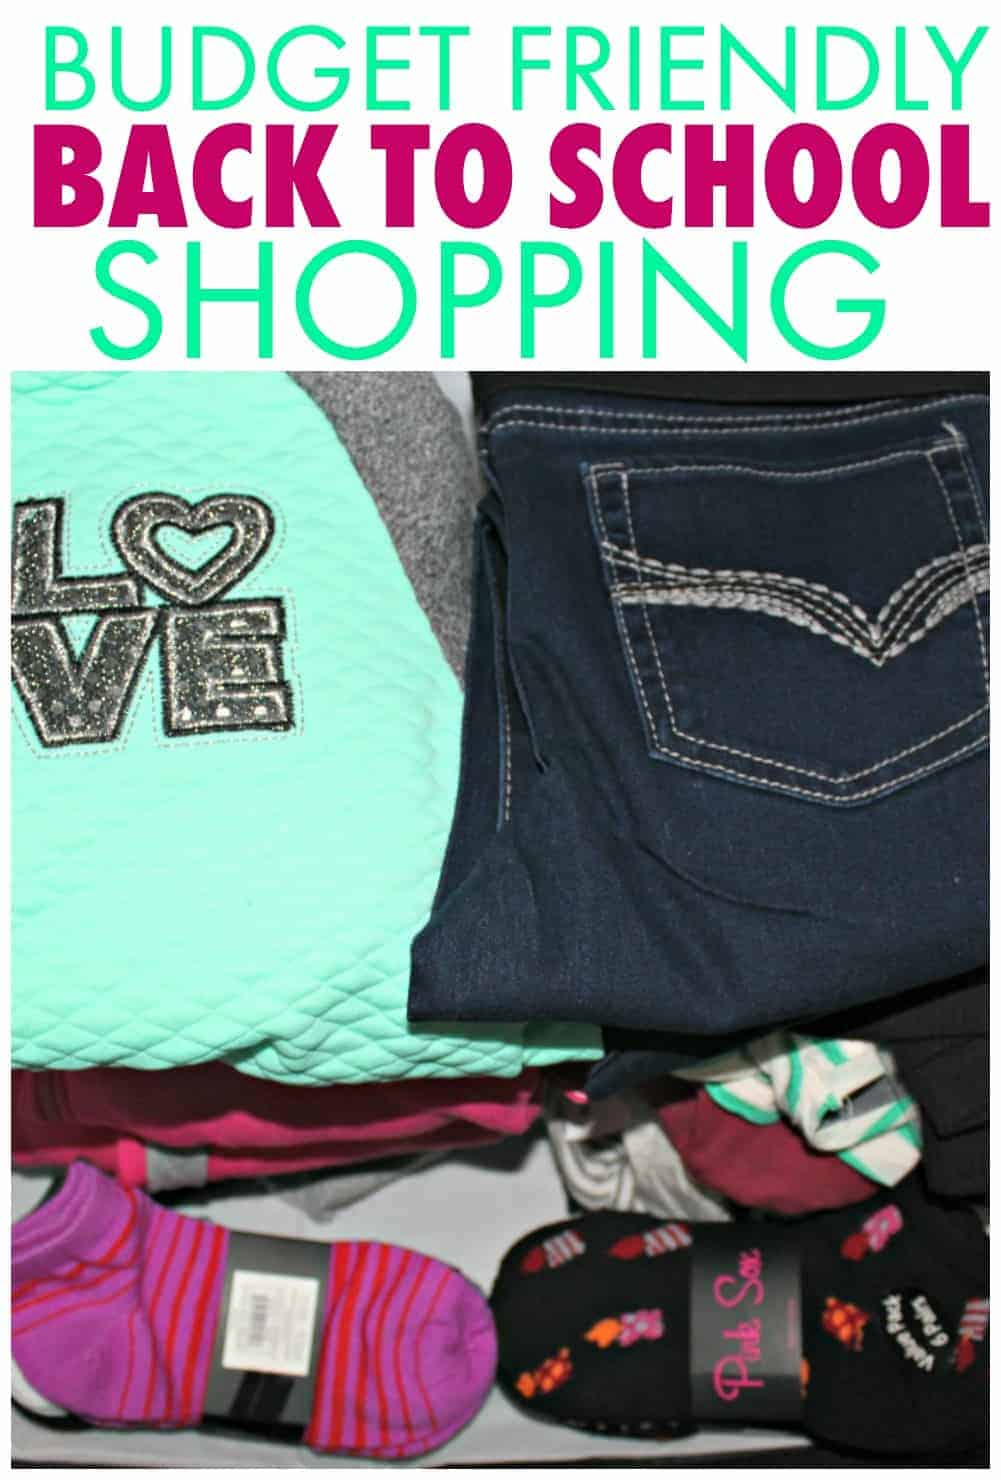 Make the most of your back to school clothing budget when you shop at Boscov's!